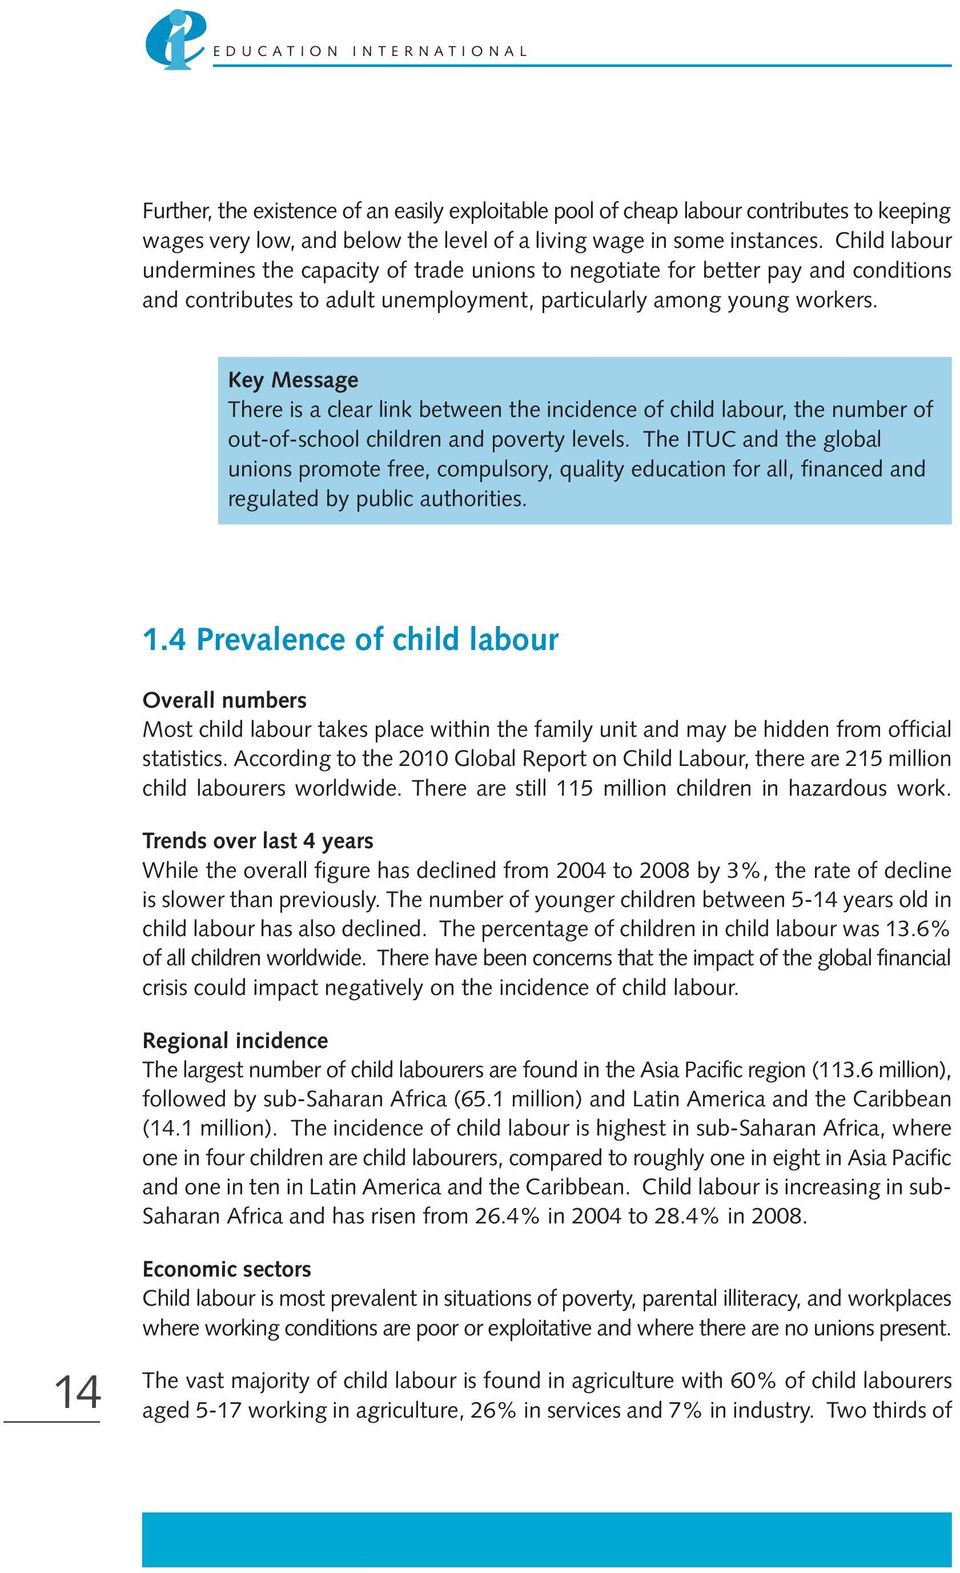 Key Message There is a clear link between the incidence of child labour, the number of out-of-school children and poverty levels.